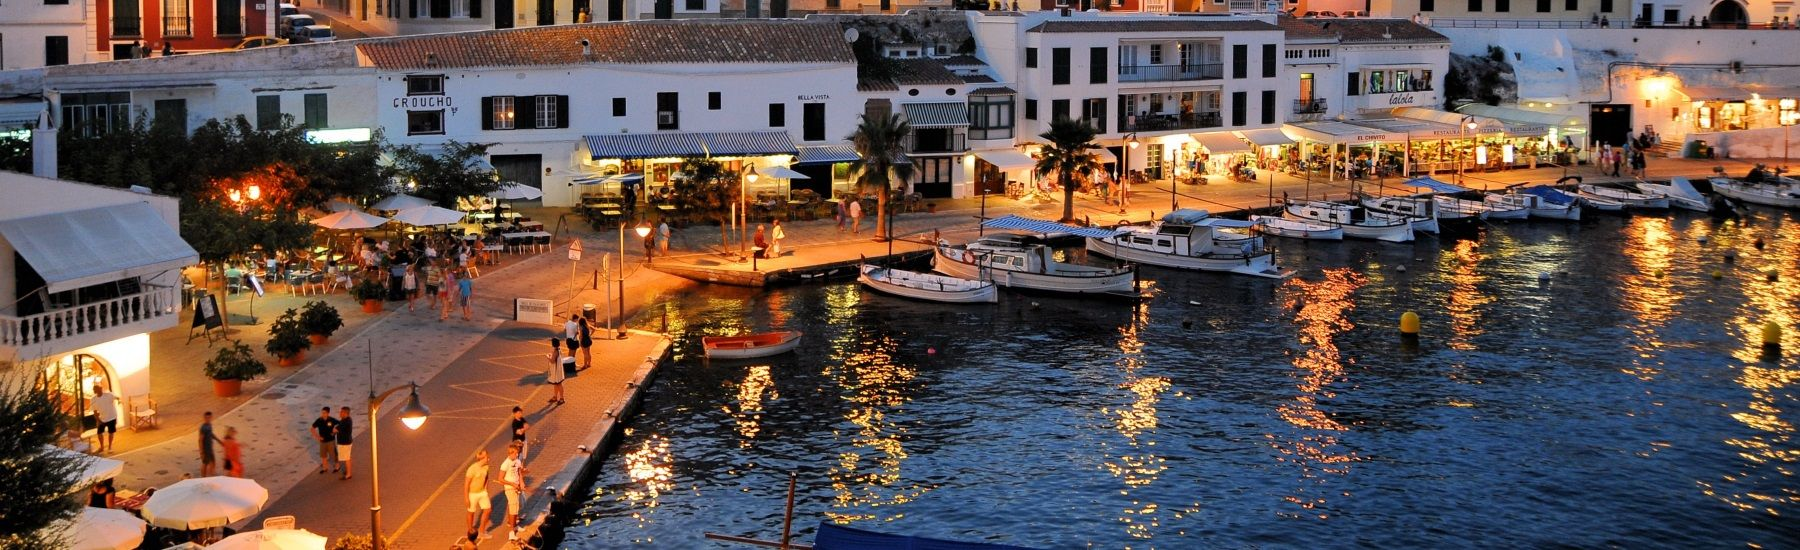 Menorca harbour dining